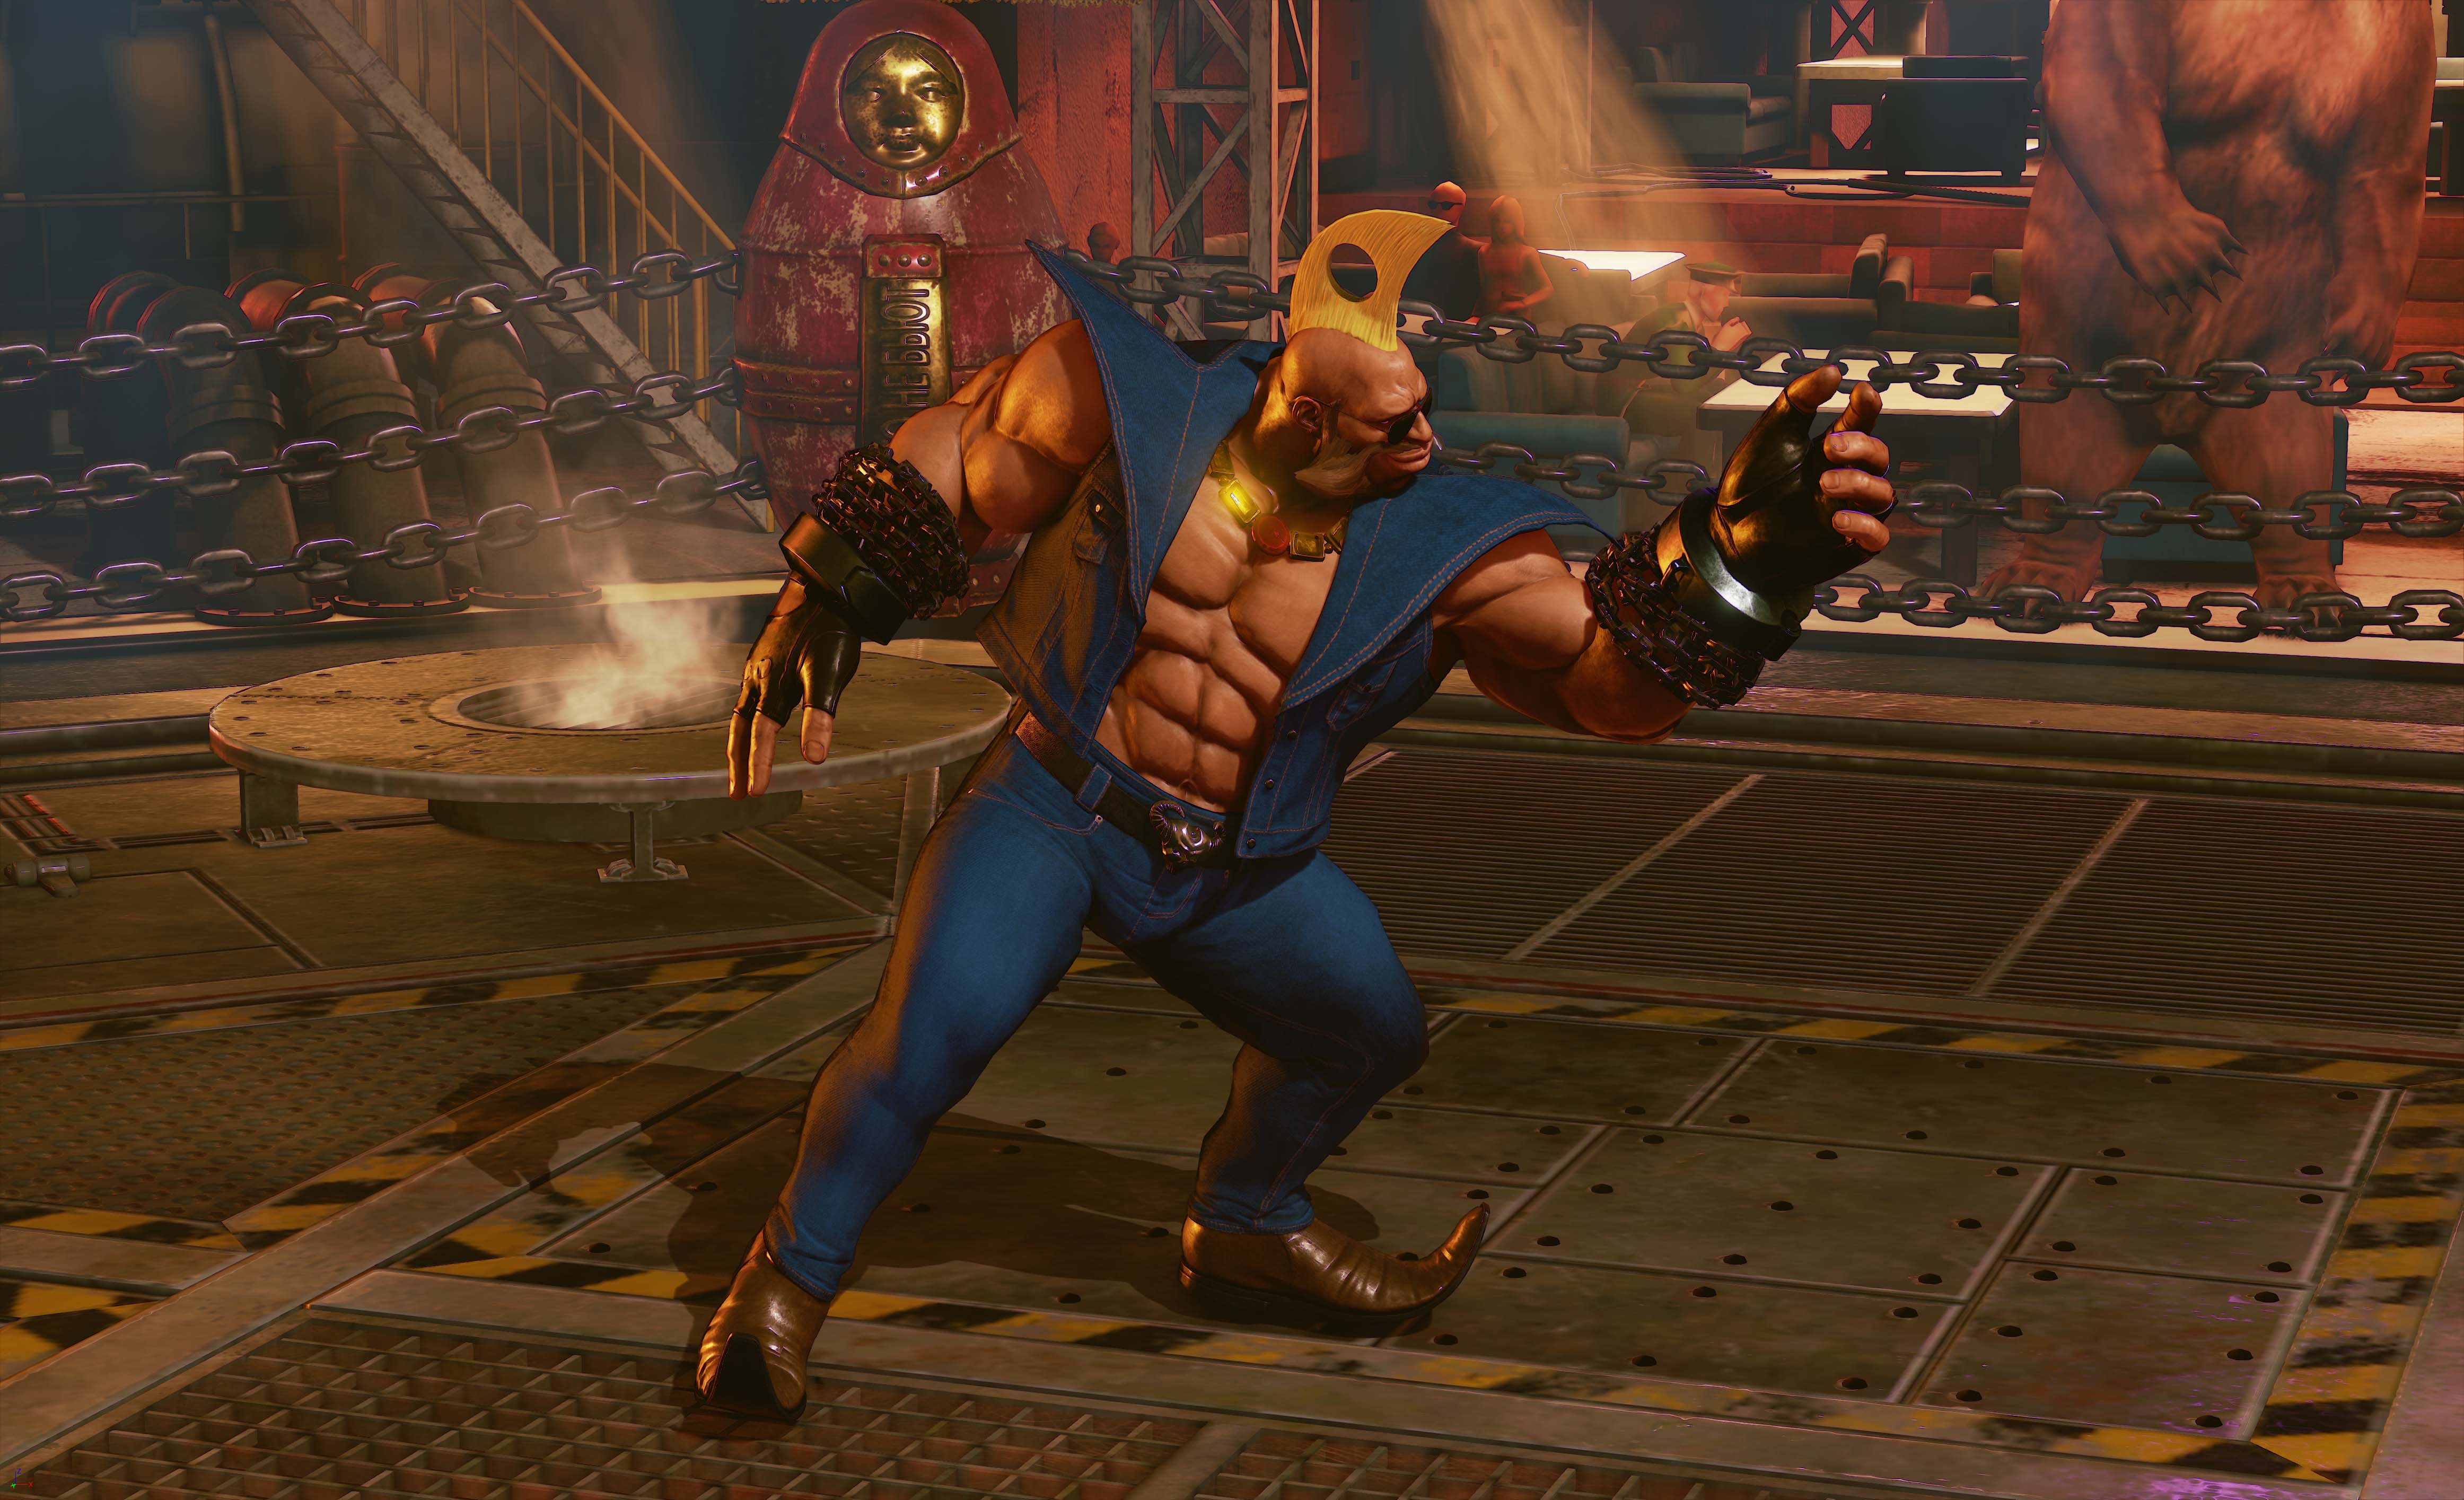 Holiday Street Fighter 5 DLC Costumes Coming This Month